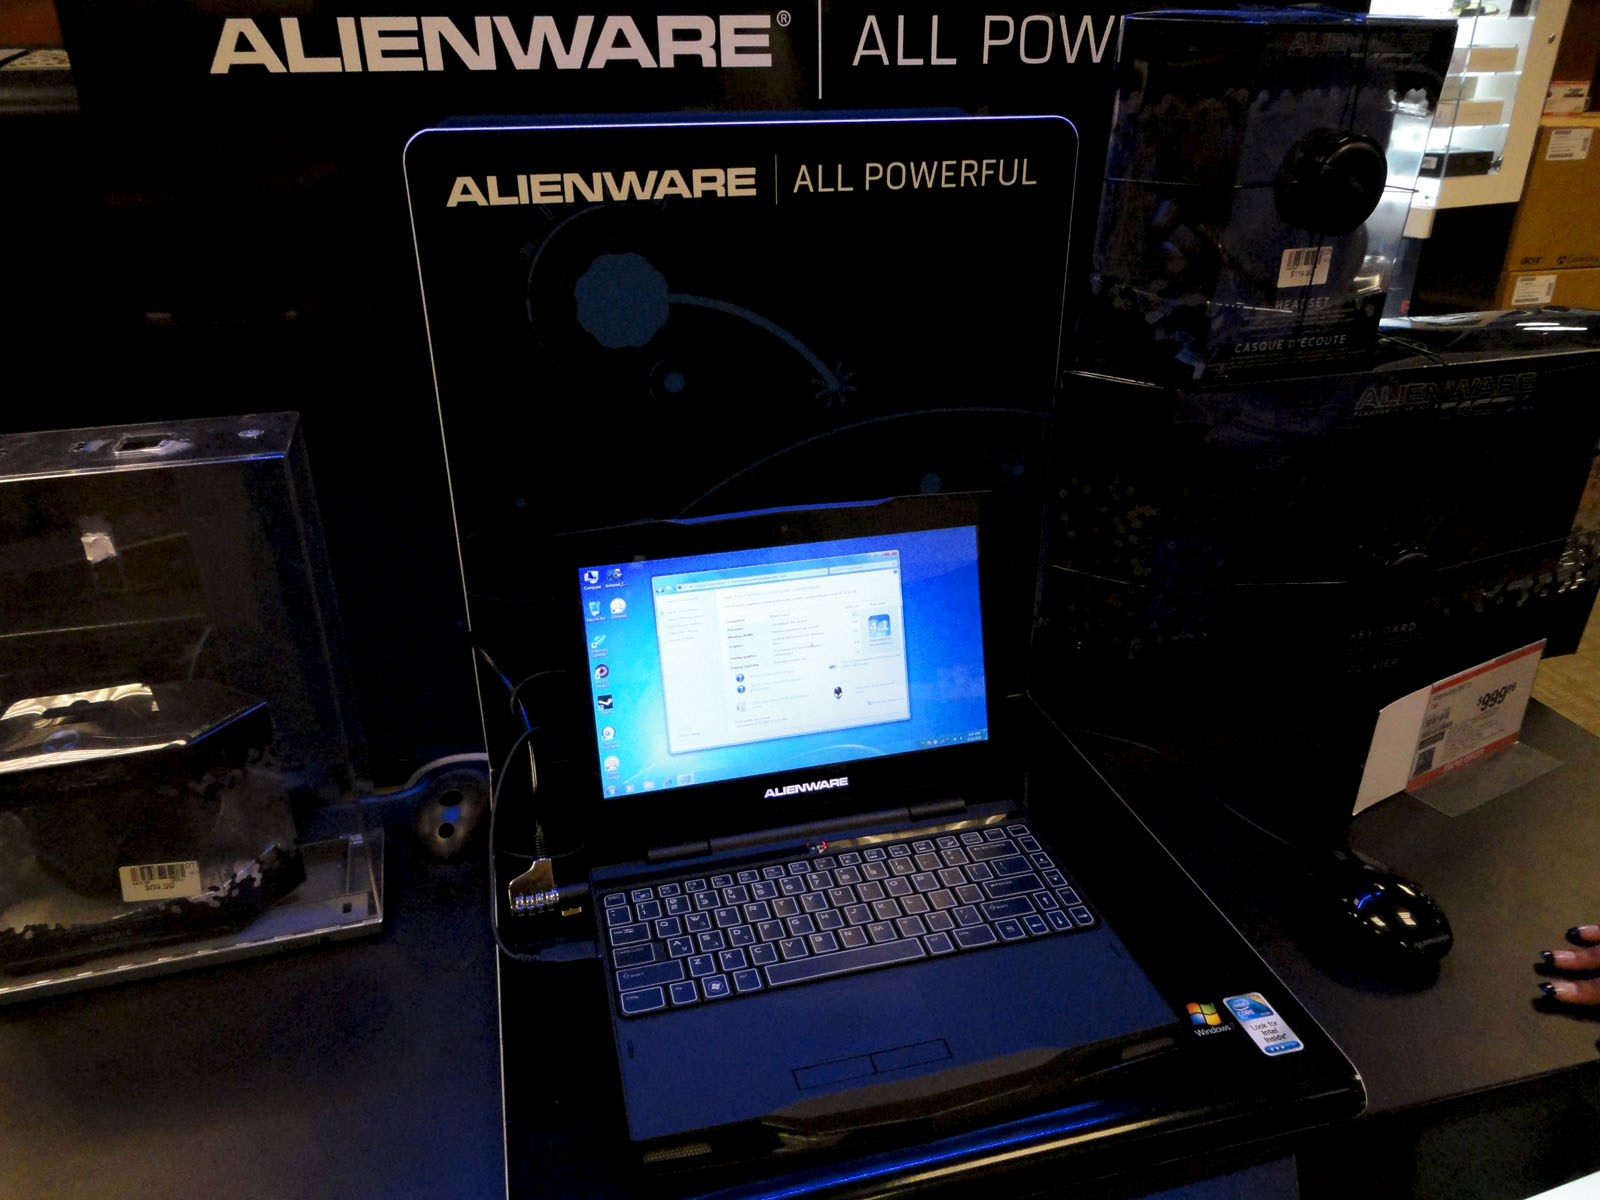 Exhibition Stand Usa : Alienware wikipedia